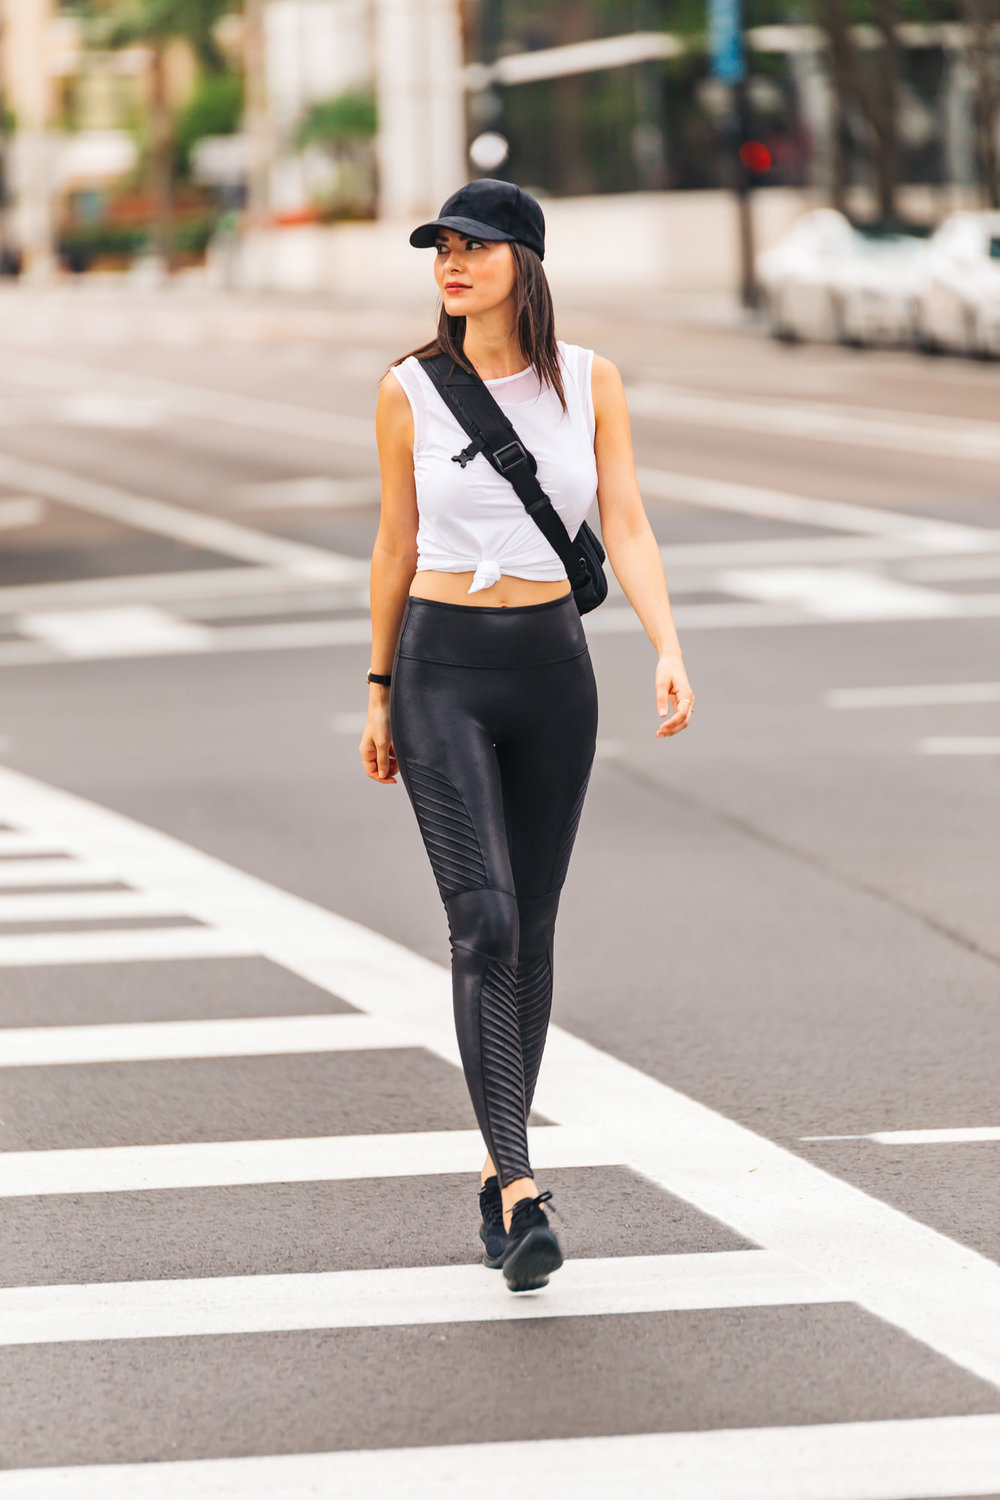 62b10a8daa404 If You Had to Pick One Pair of Travel Leggings, This is The One ...